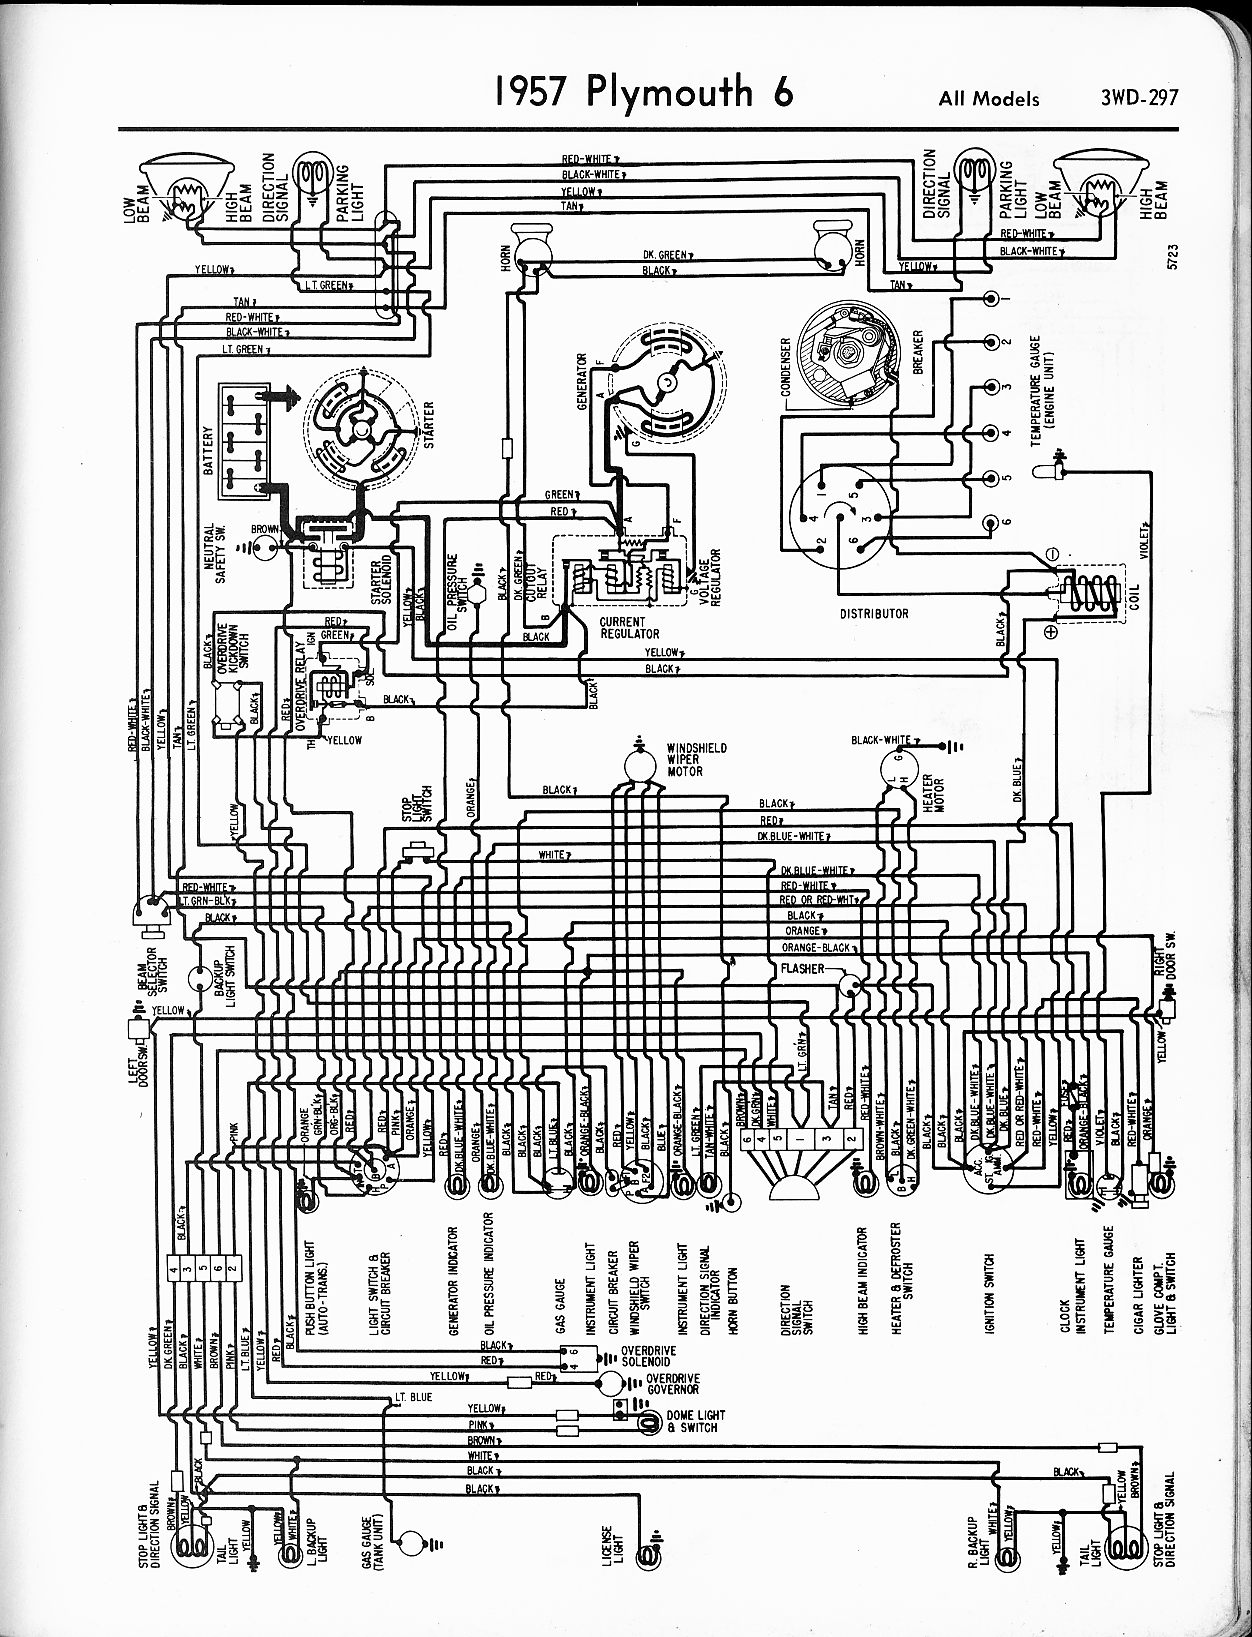 MWire5765 297 1956 1965 plymouth wiring the old car manual project 1968 Ford Falcon Wiring Diagram at panicattacktreatment.co